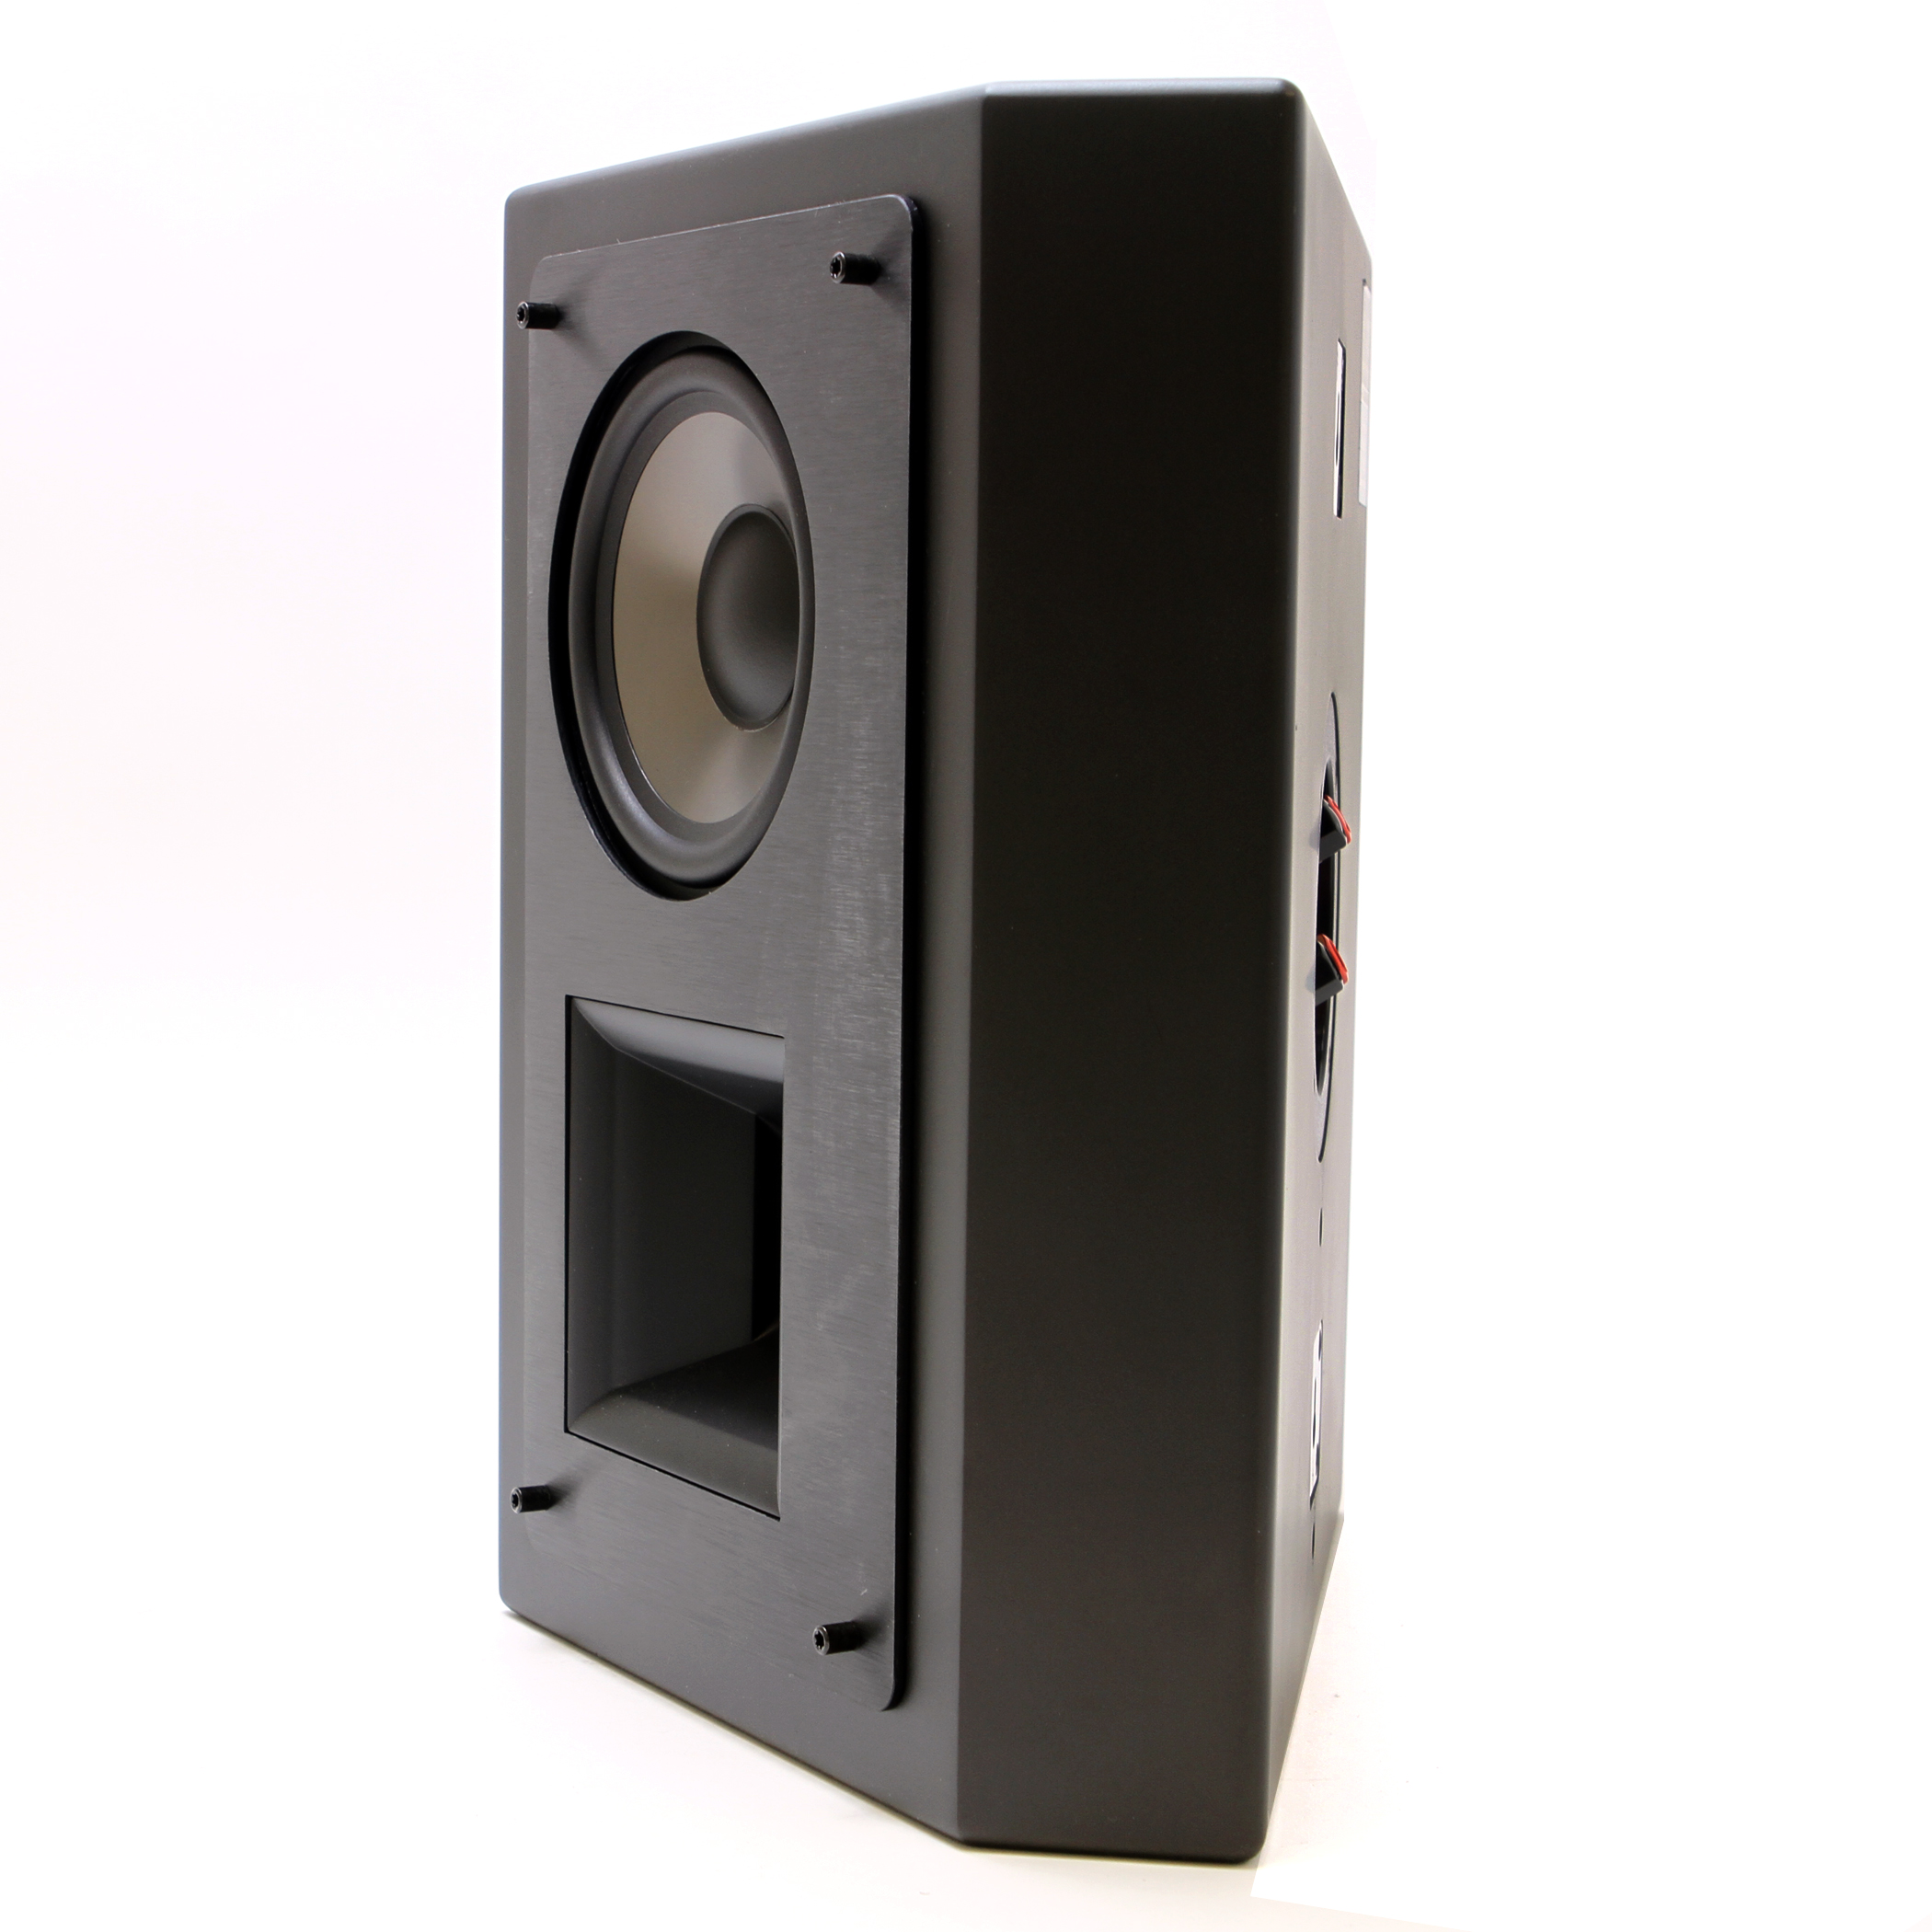 Jamo S 608 Floorstanding Speaker Prod133368 together with Ks 525 Thx Surround Speakers Pair as well Speaker Hd   5407 in addition 127977 Atmos Track Explained 7 1 Vs 5 1 2 A moreover Pioneer Ct93 Reference Elite Series P 1997. on klipsch sound system